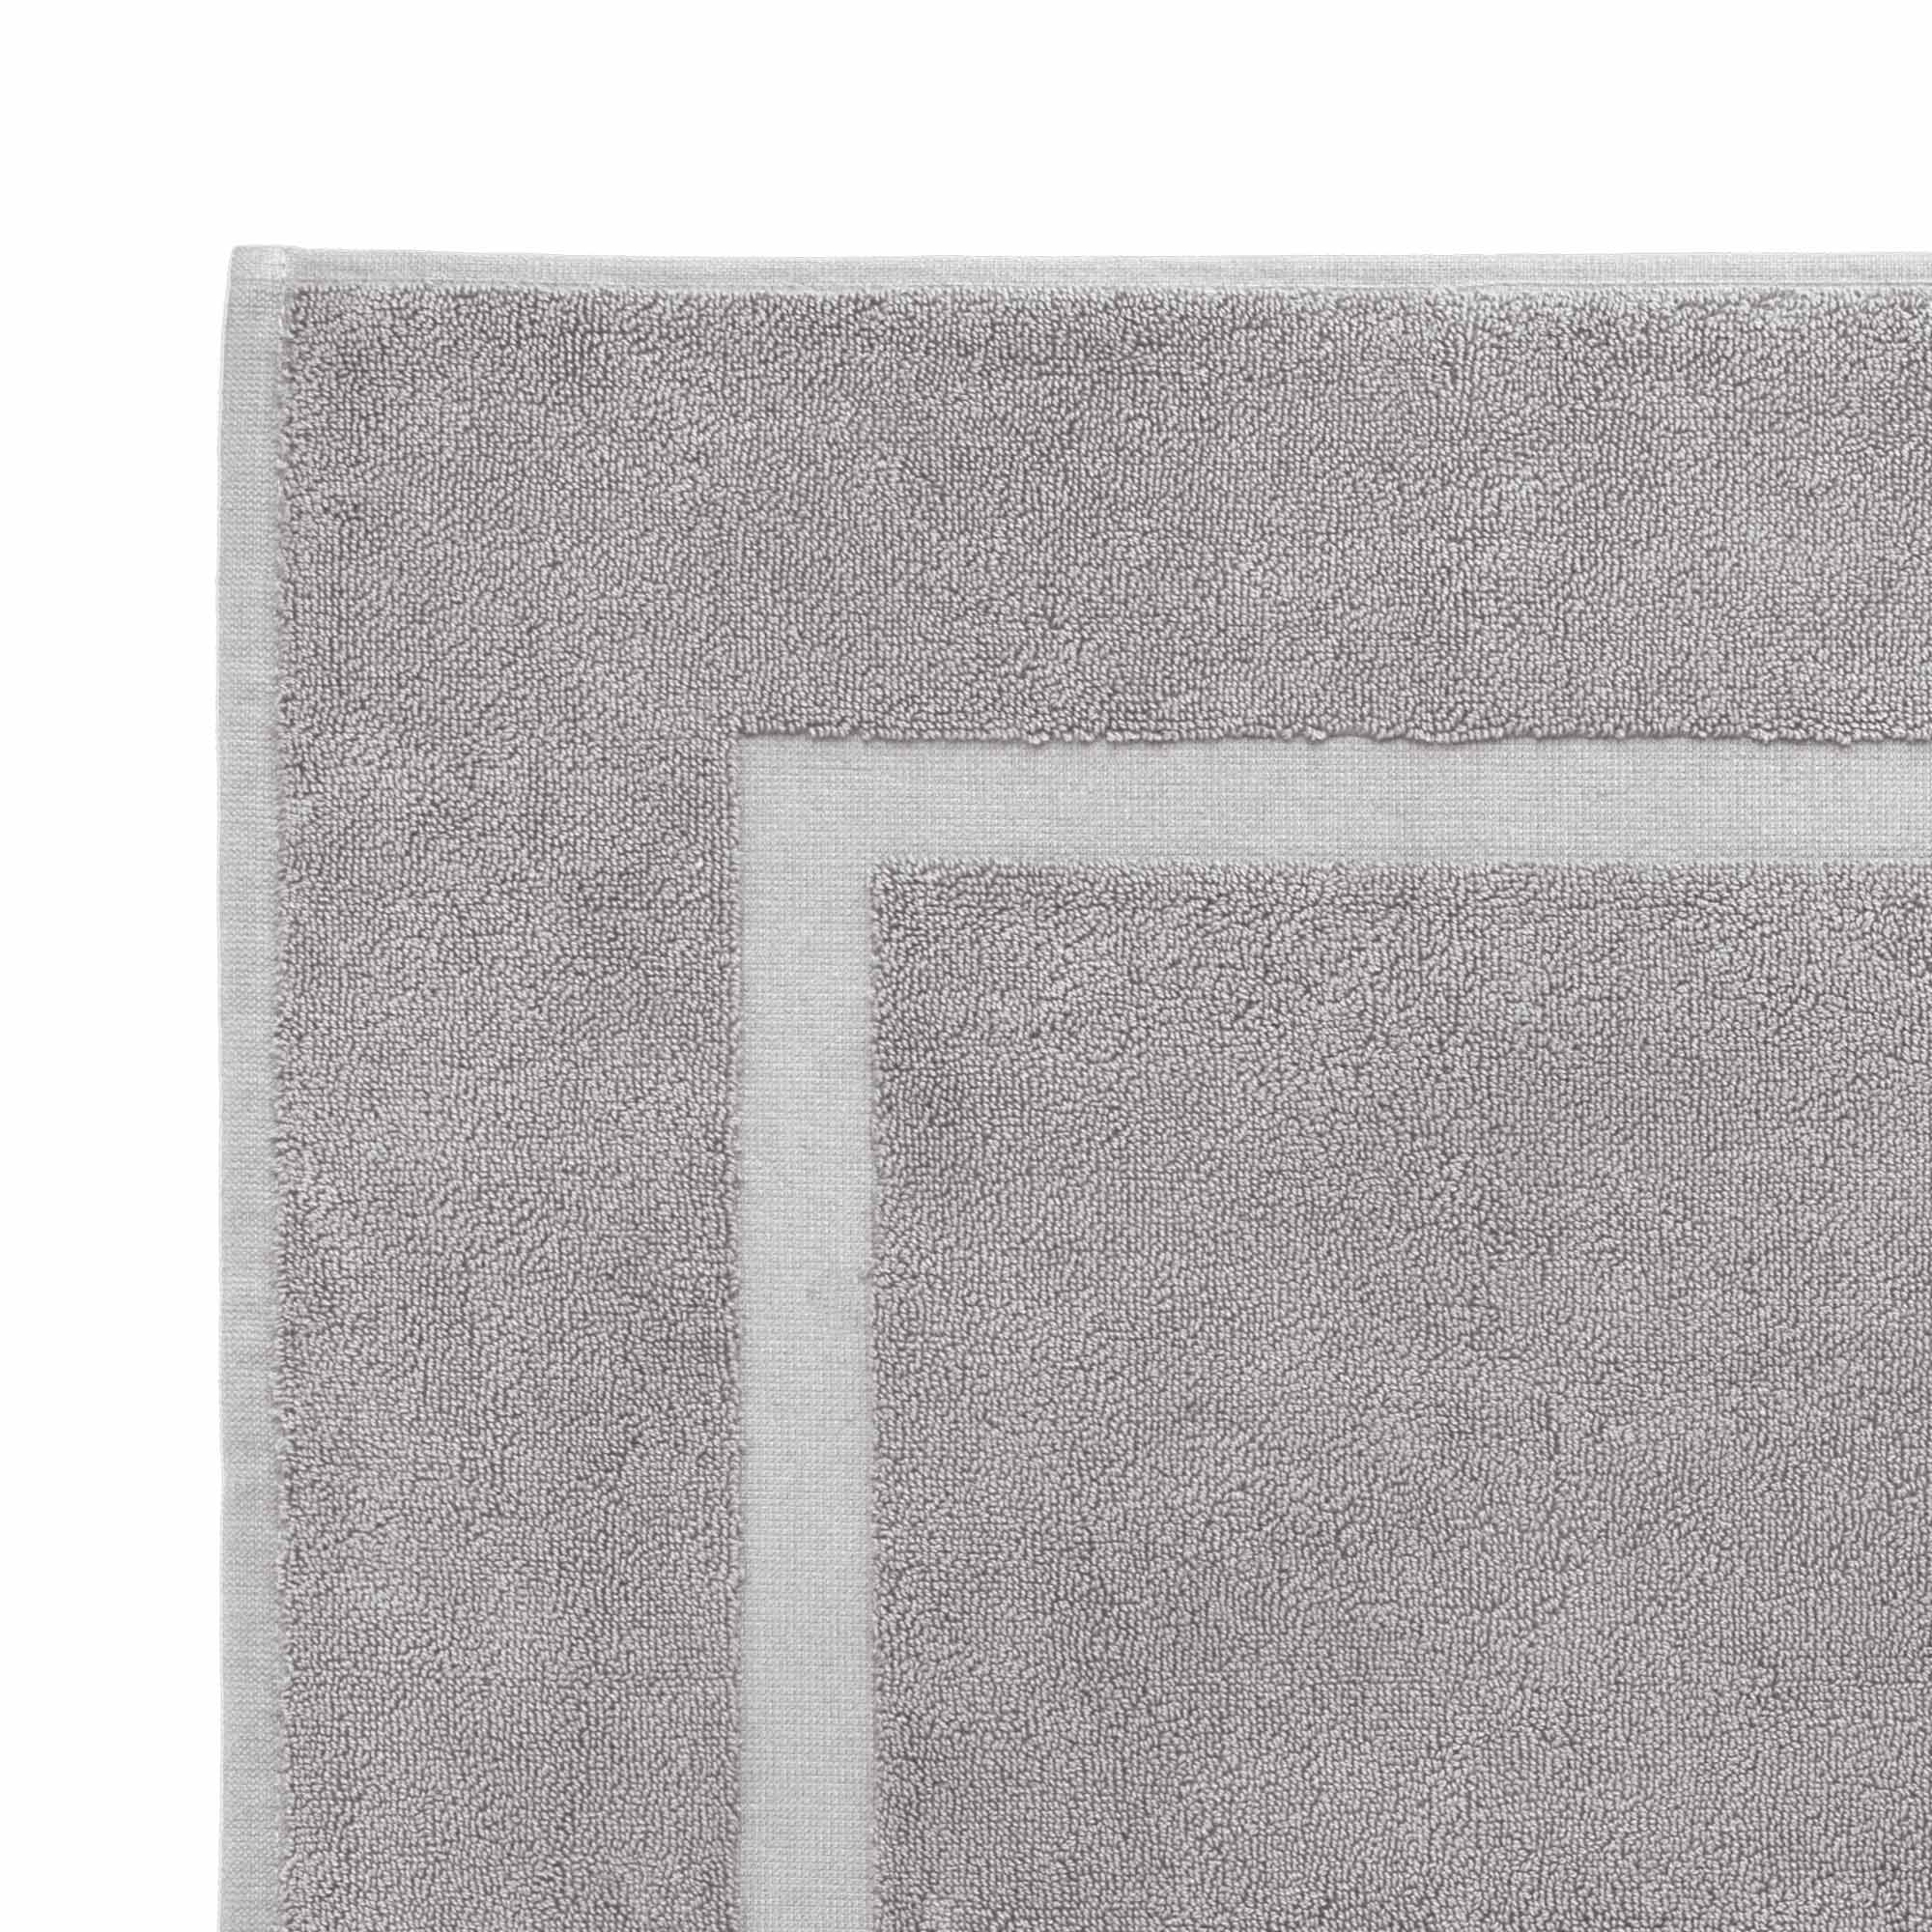 Penela Bath Mat in stone grey | Home & Living inspiration | URBANARA